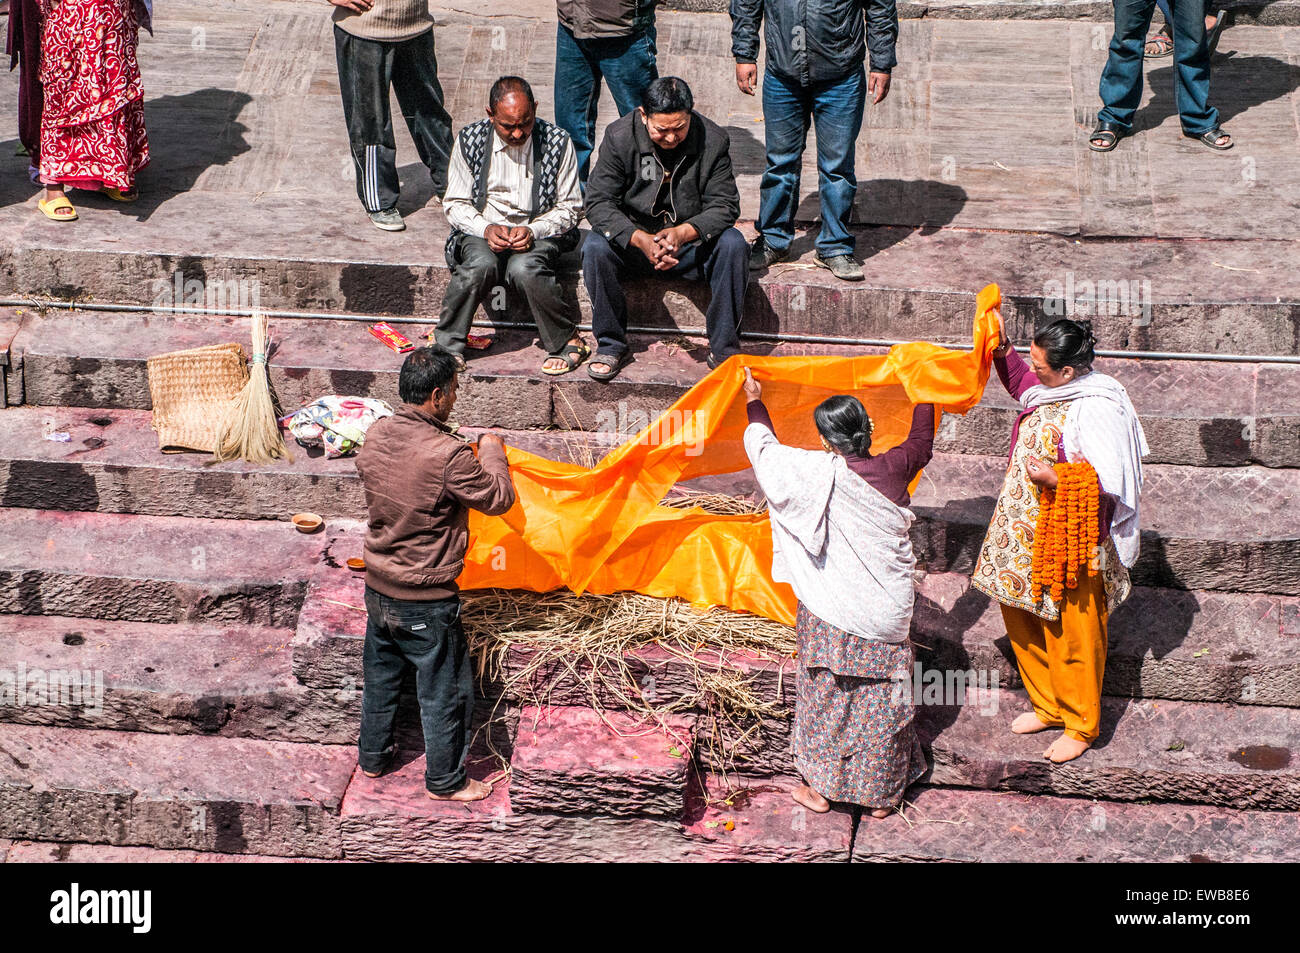 Hindu Funeral Stock Photos & Hindu Funeral Stock Images - Alamy